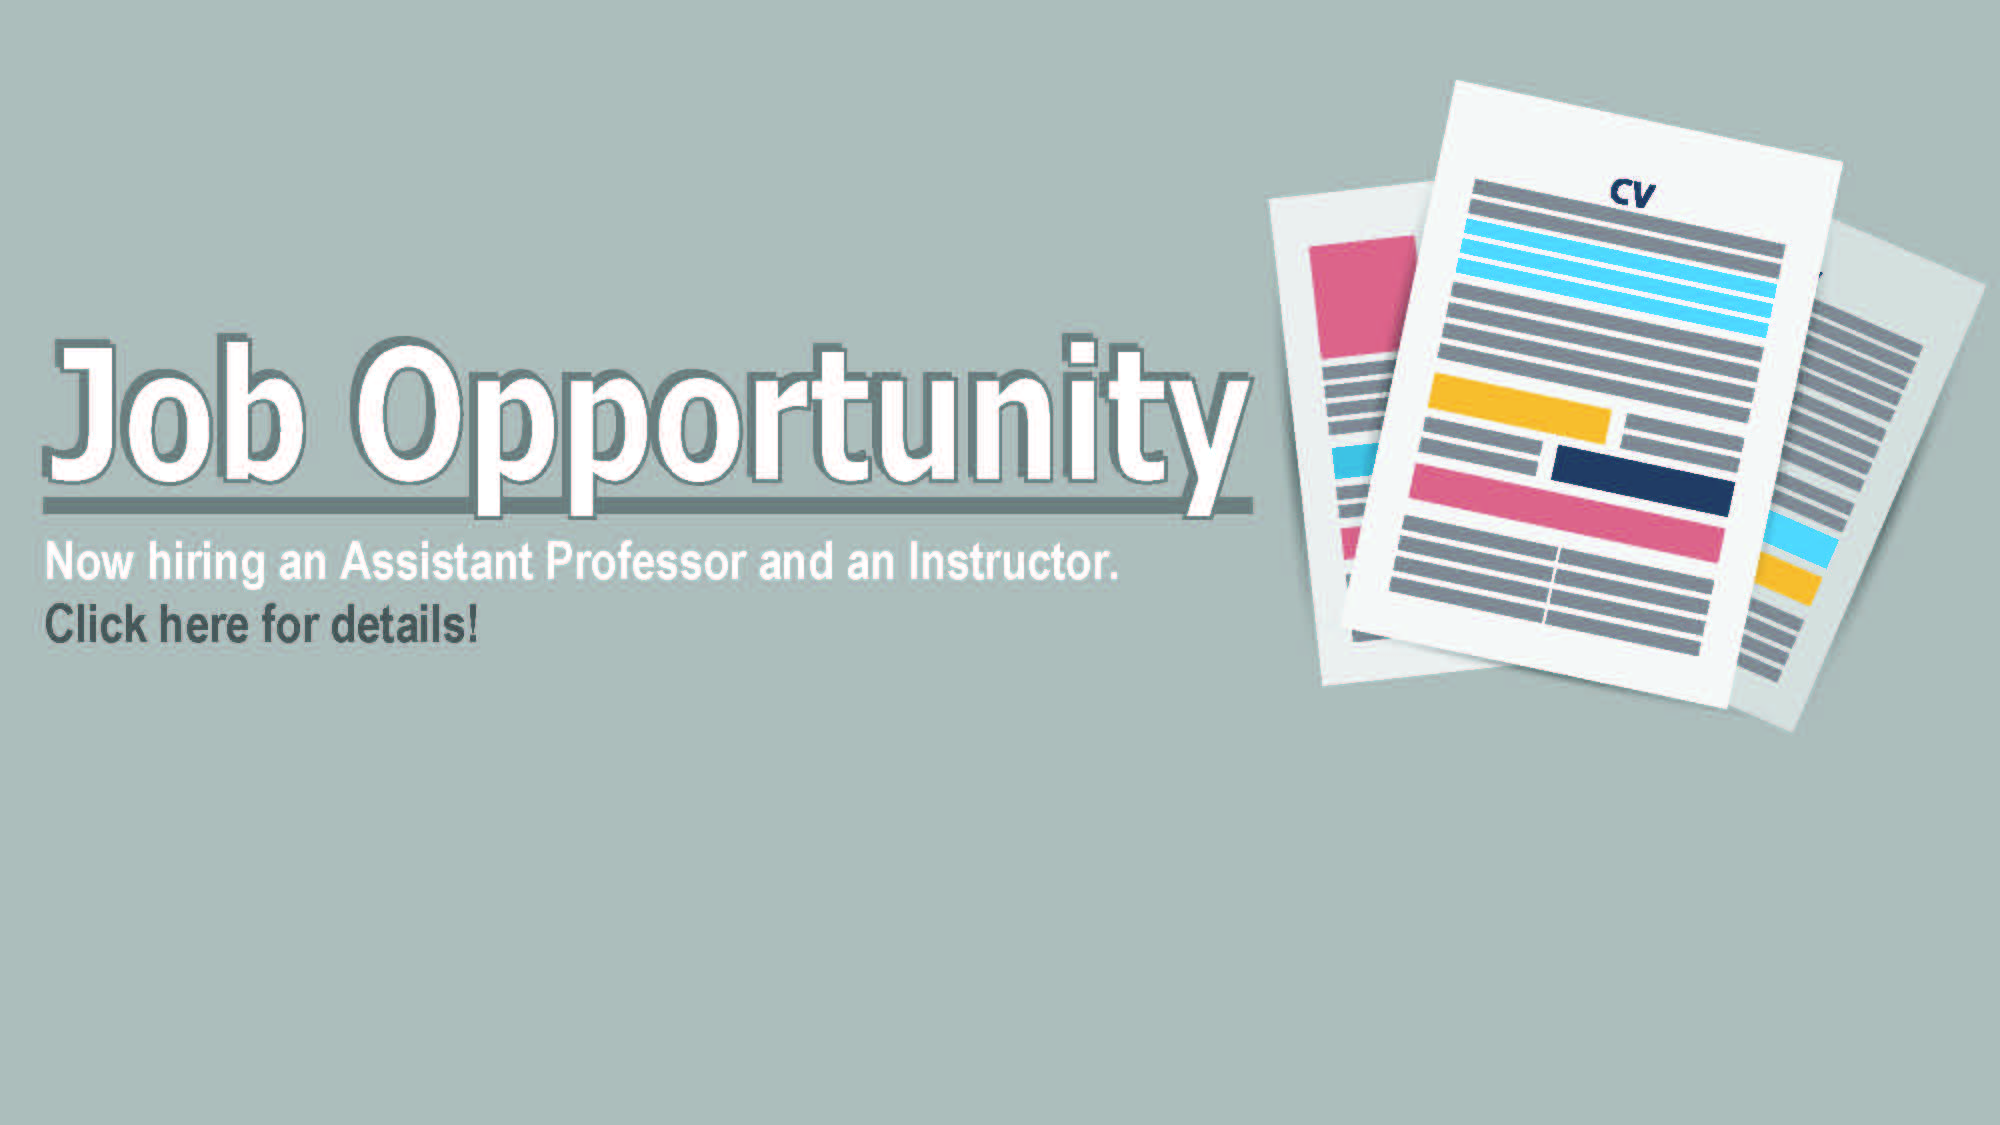 Hiring for Faculty Positions Now.